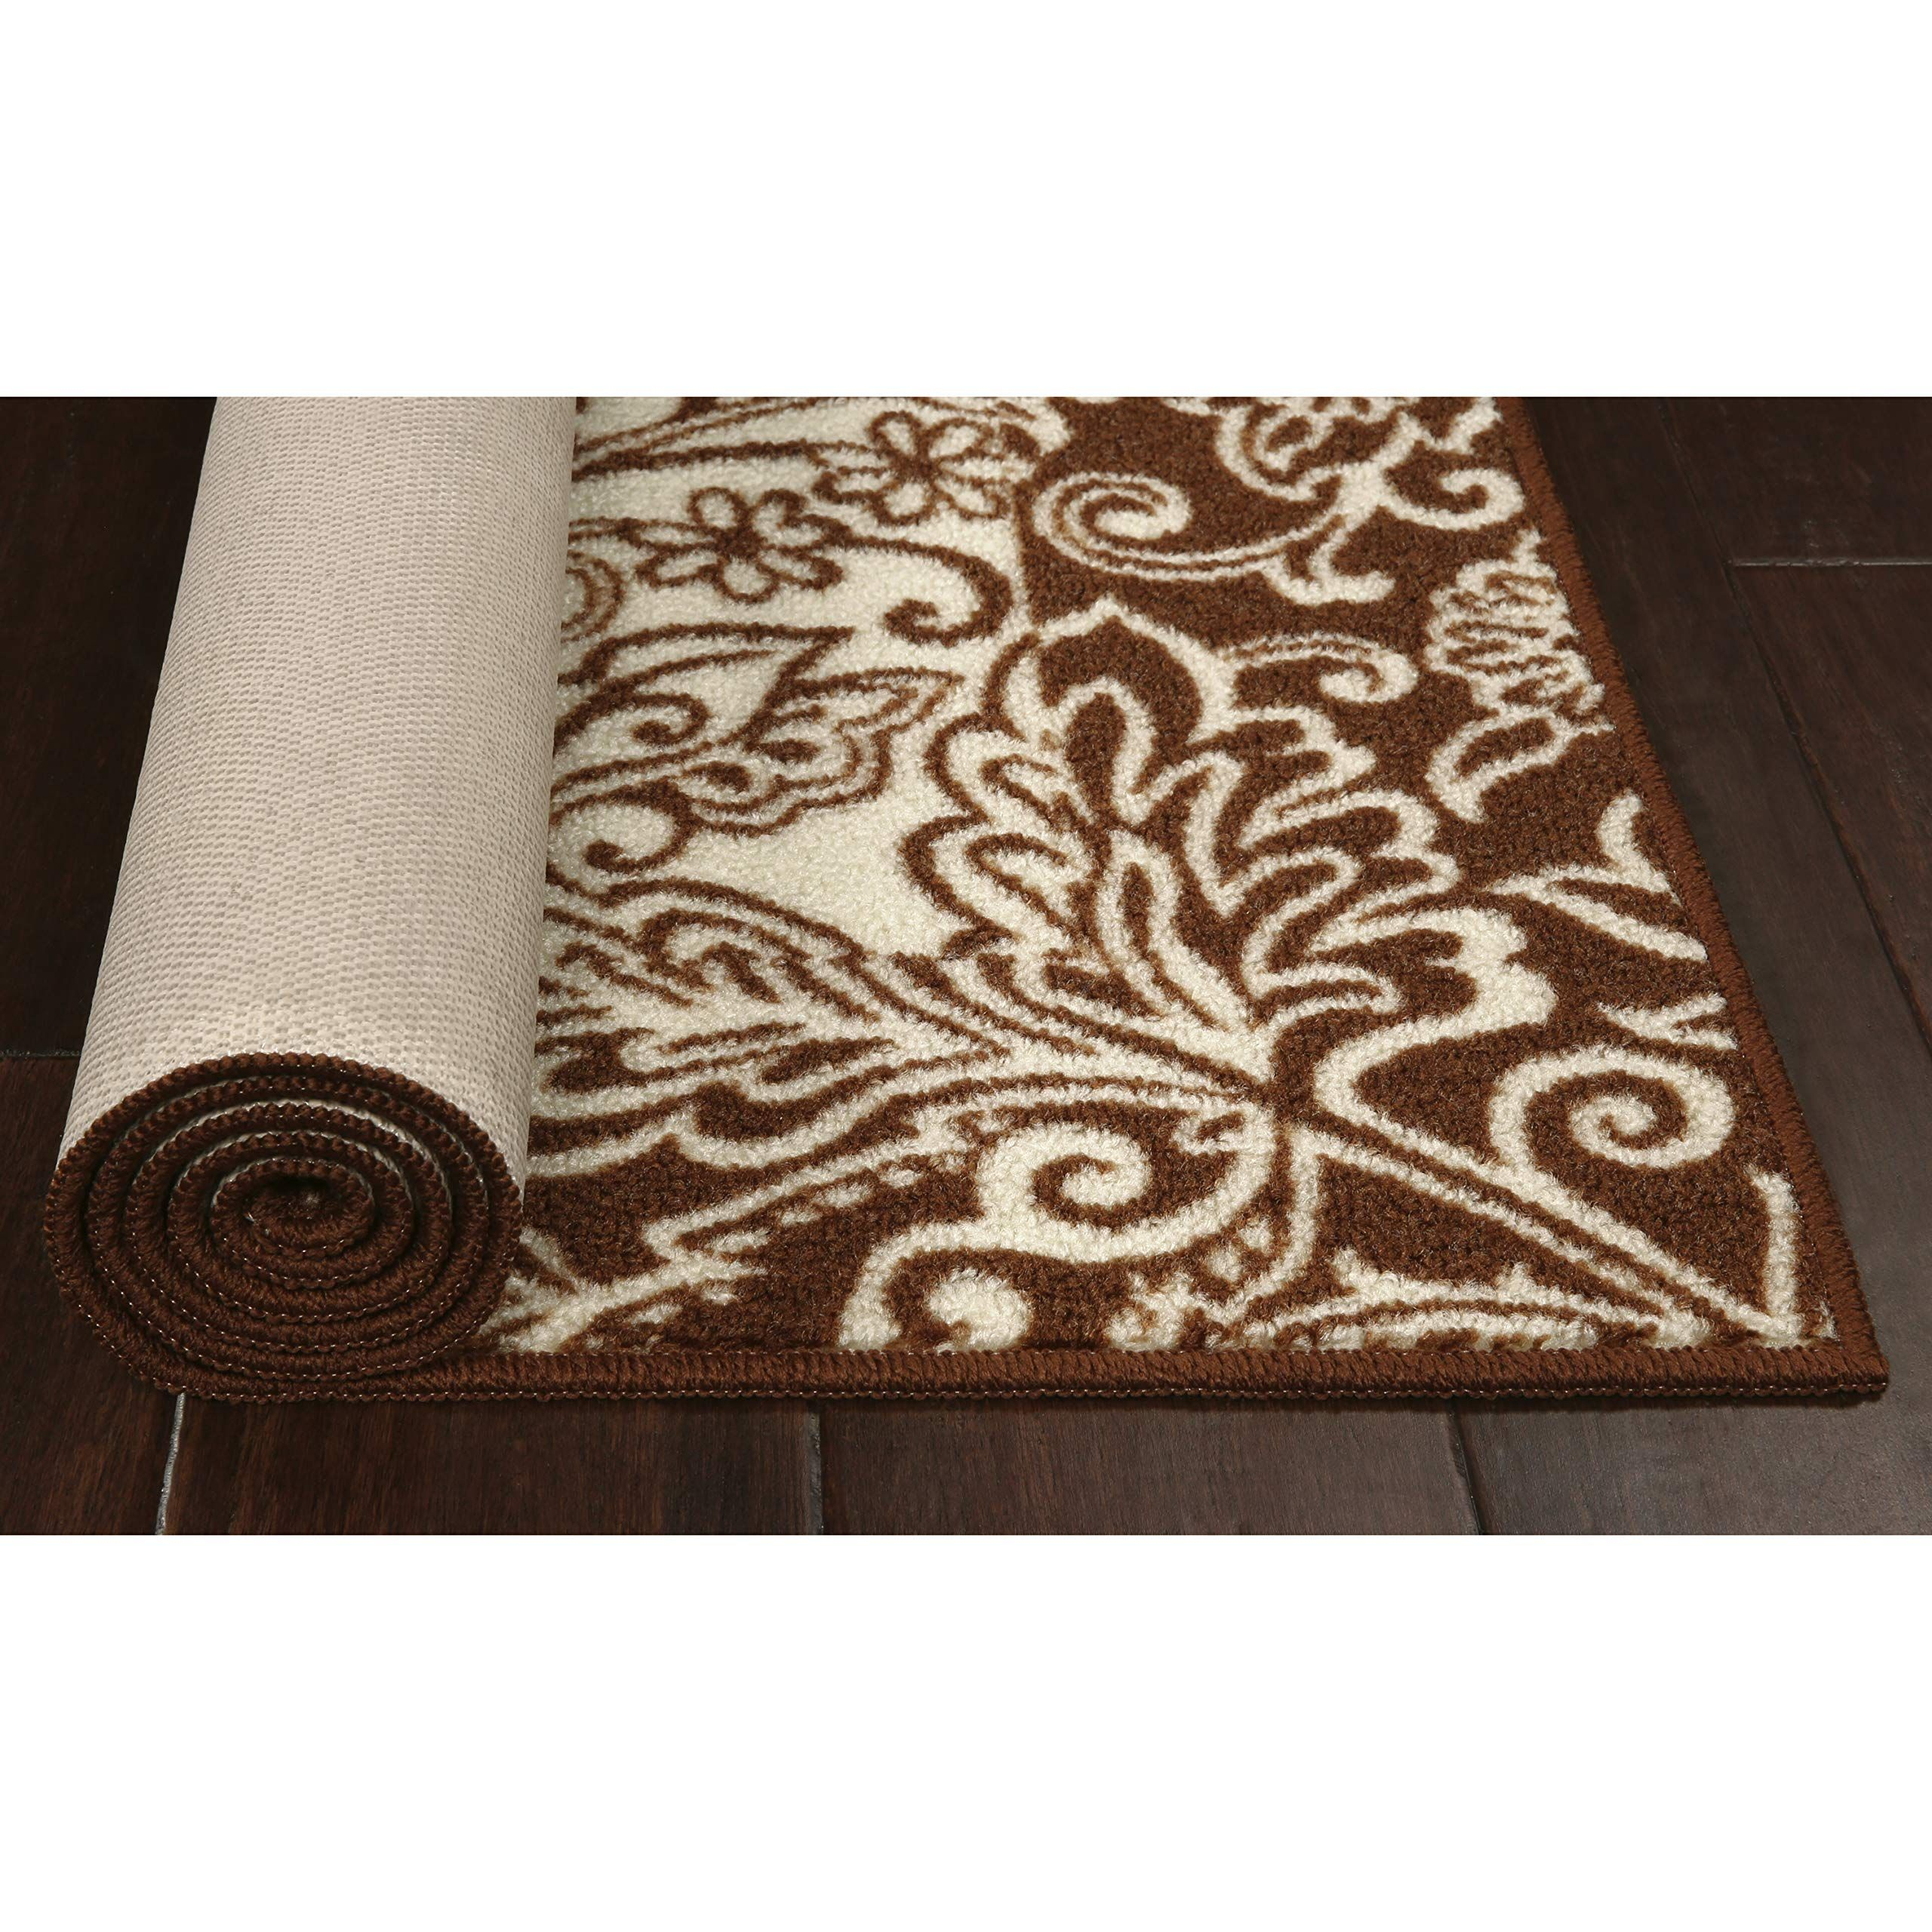 Maples Rugs Kitchen Rug Adeline 18 X 210 Non Skid Washable